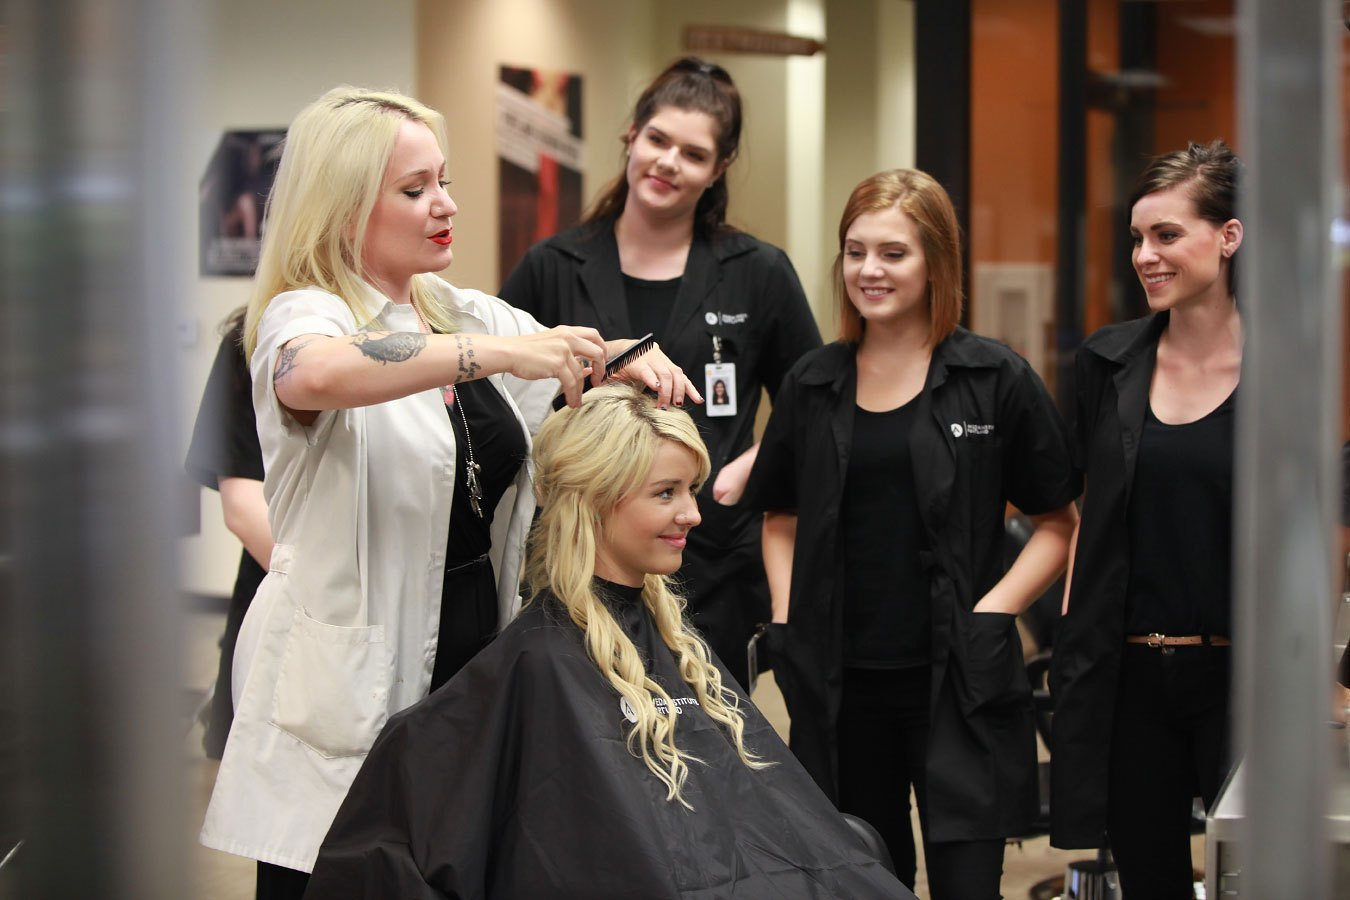 The Best Cosmetology Program Aveda Institute Portland Or Vancouver Wa Pictures